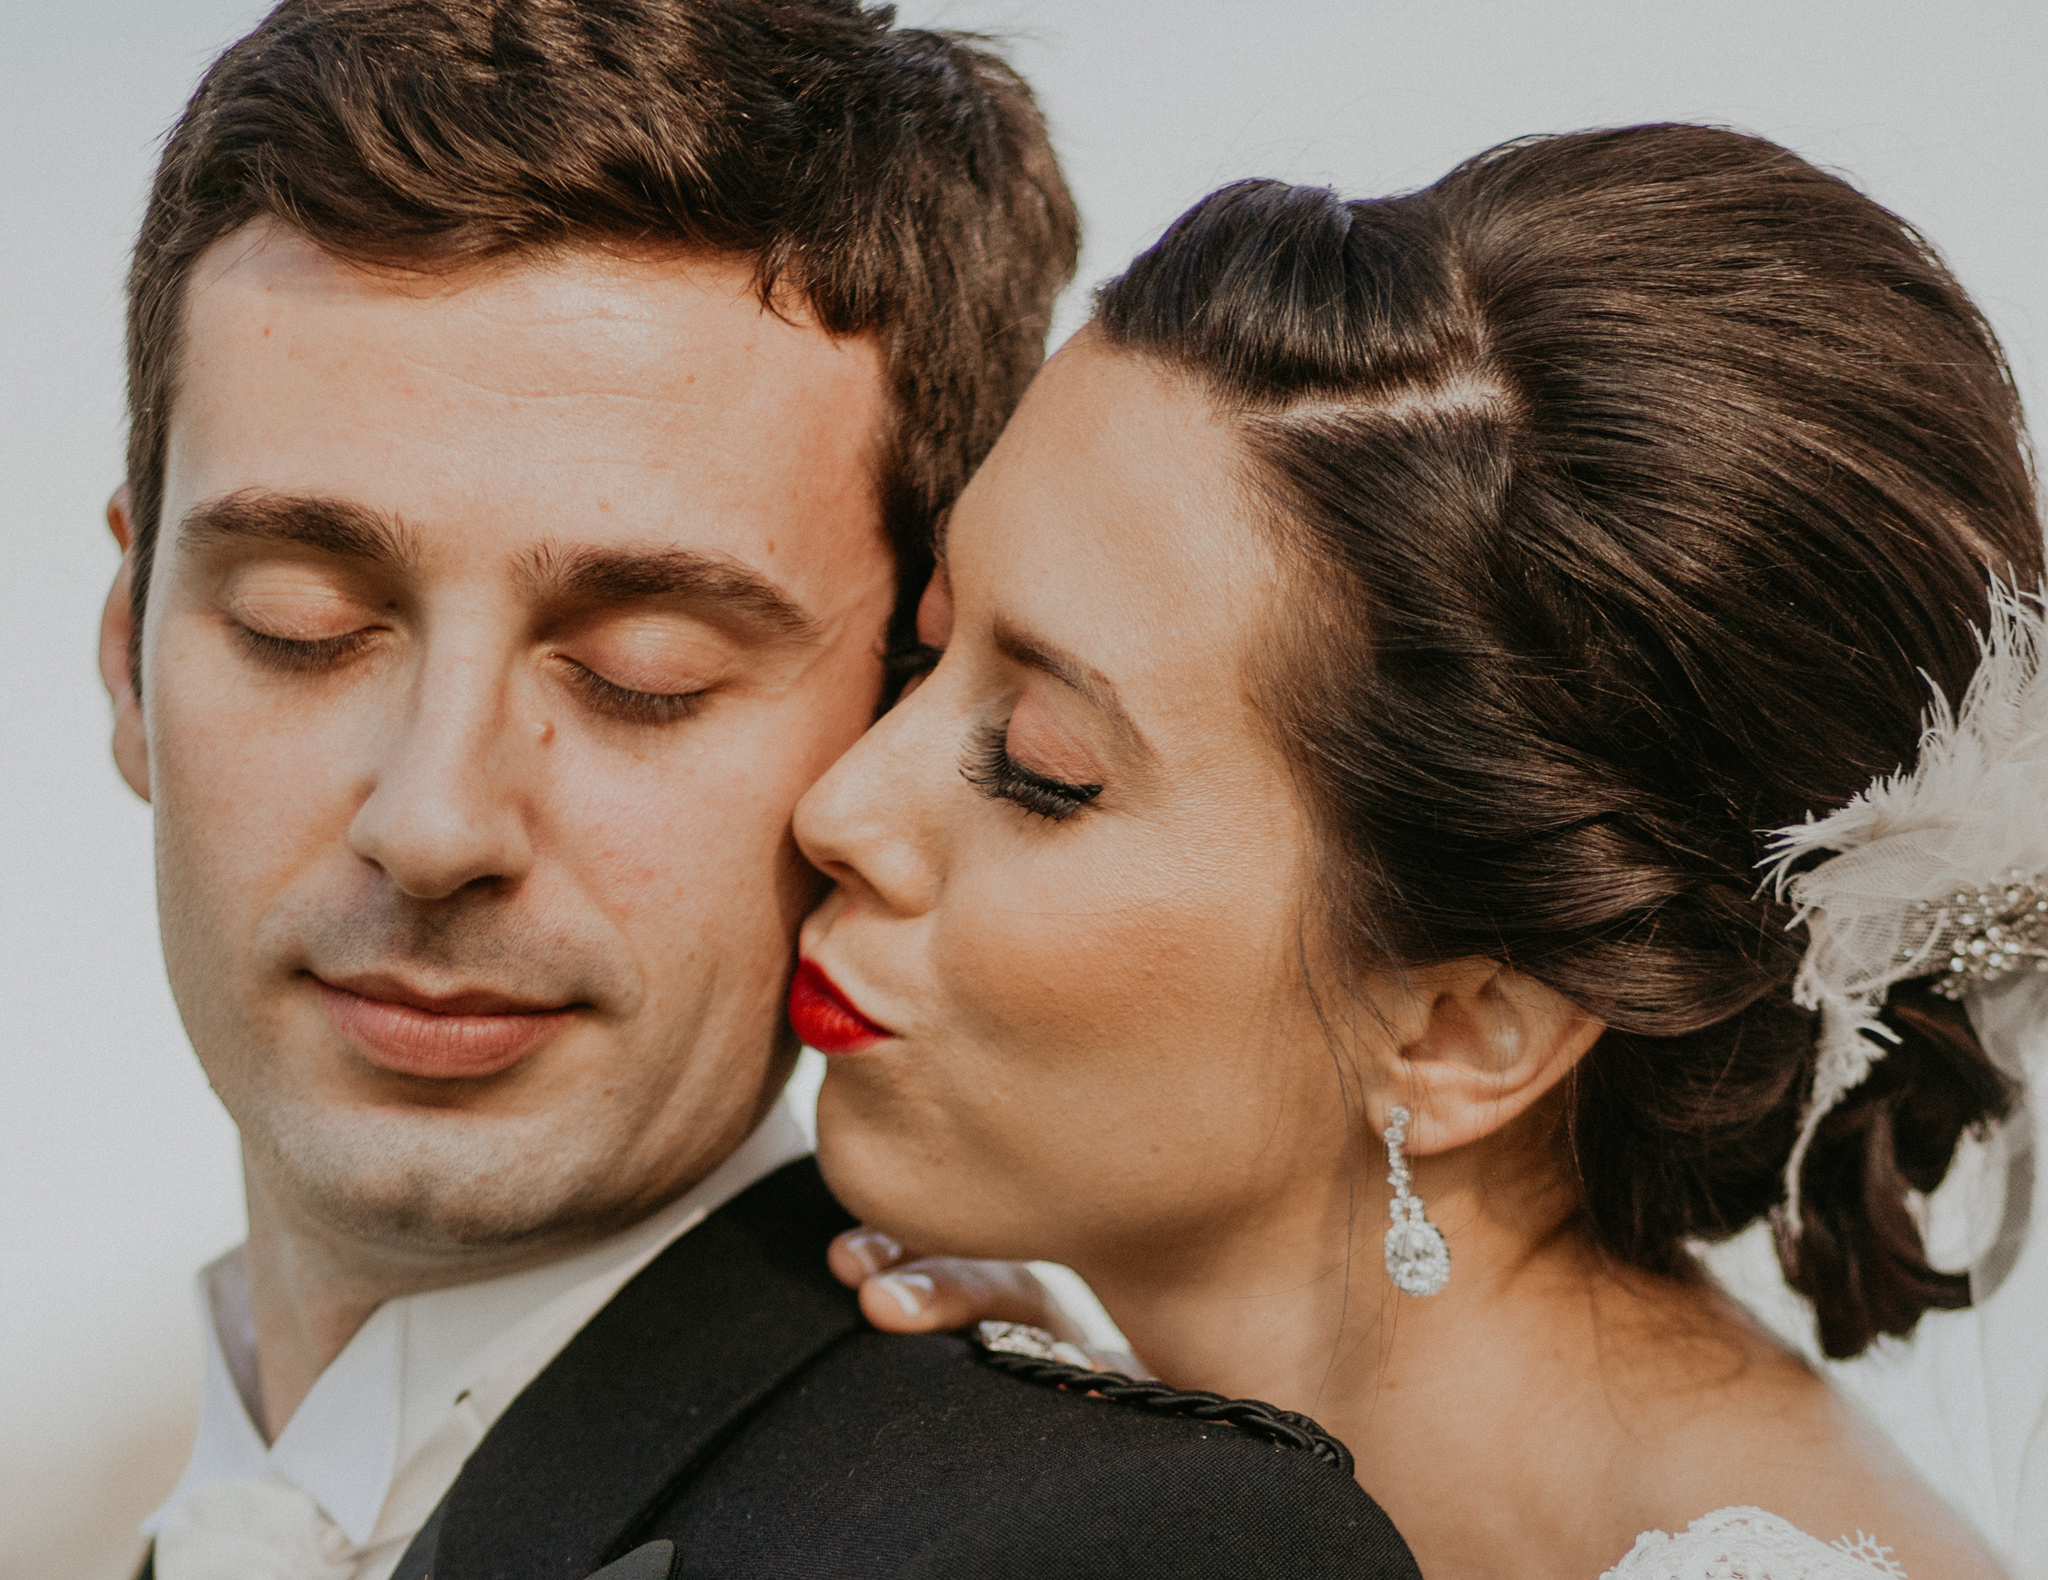 Bride kisses groom on cheek romantic wedding photo minneapolis mn